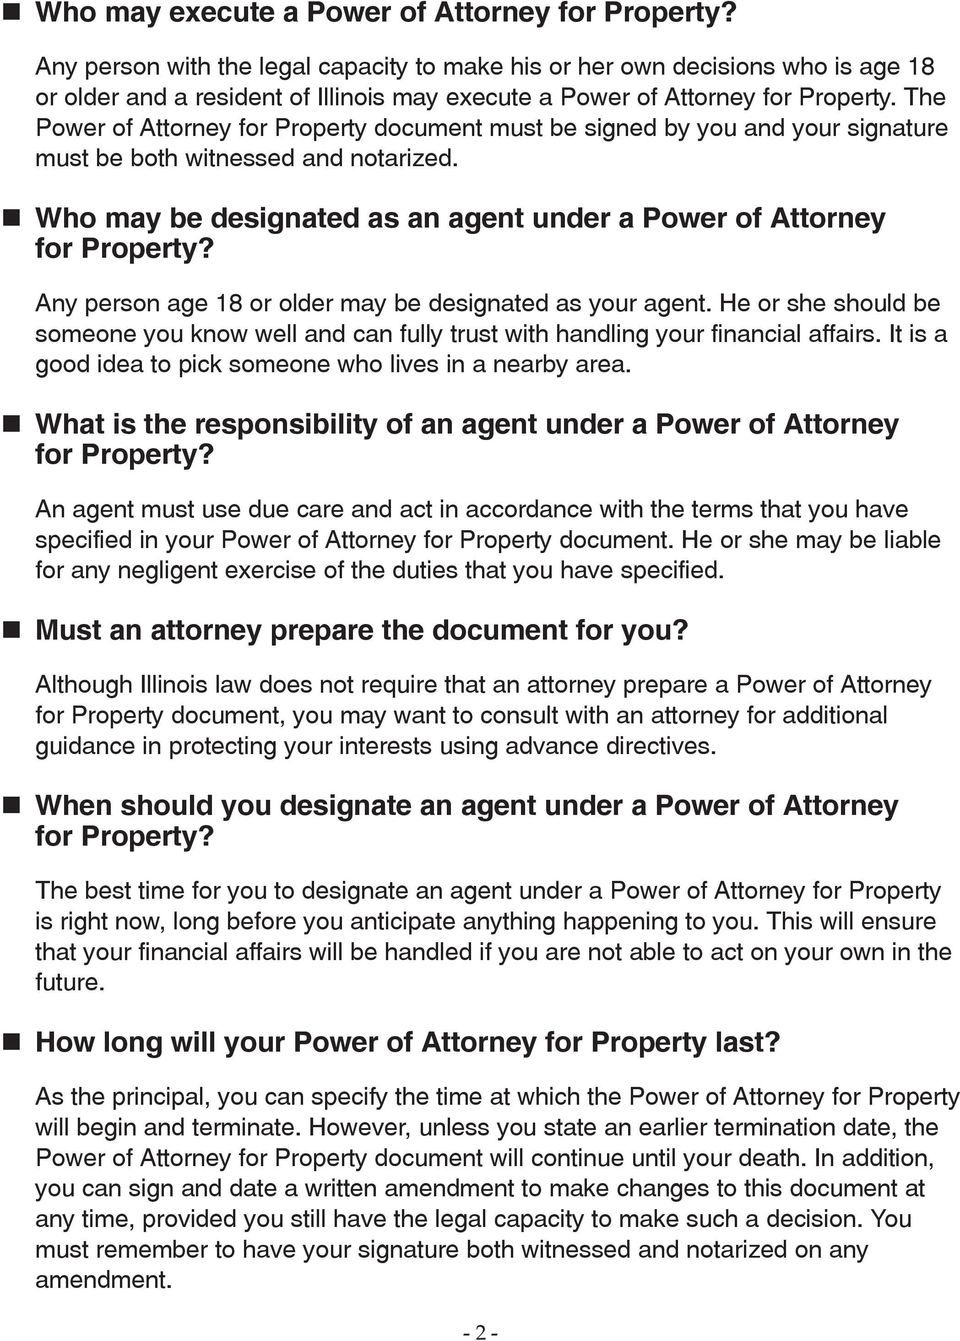 The Power of Attorney for Property document must be signed by you and your signature must be both witnessed and notarized. Who may be designated as an agent under a Power of Attorney for Property?